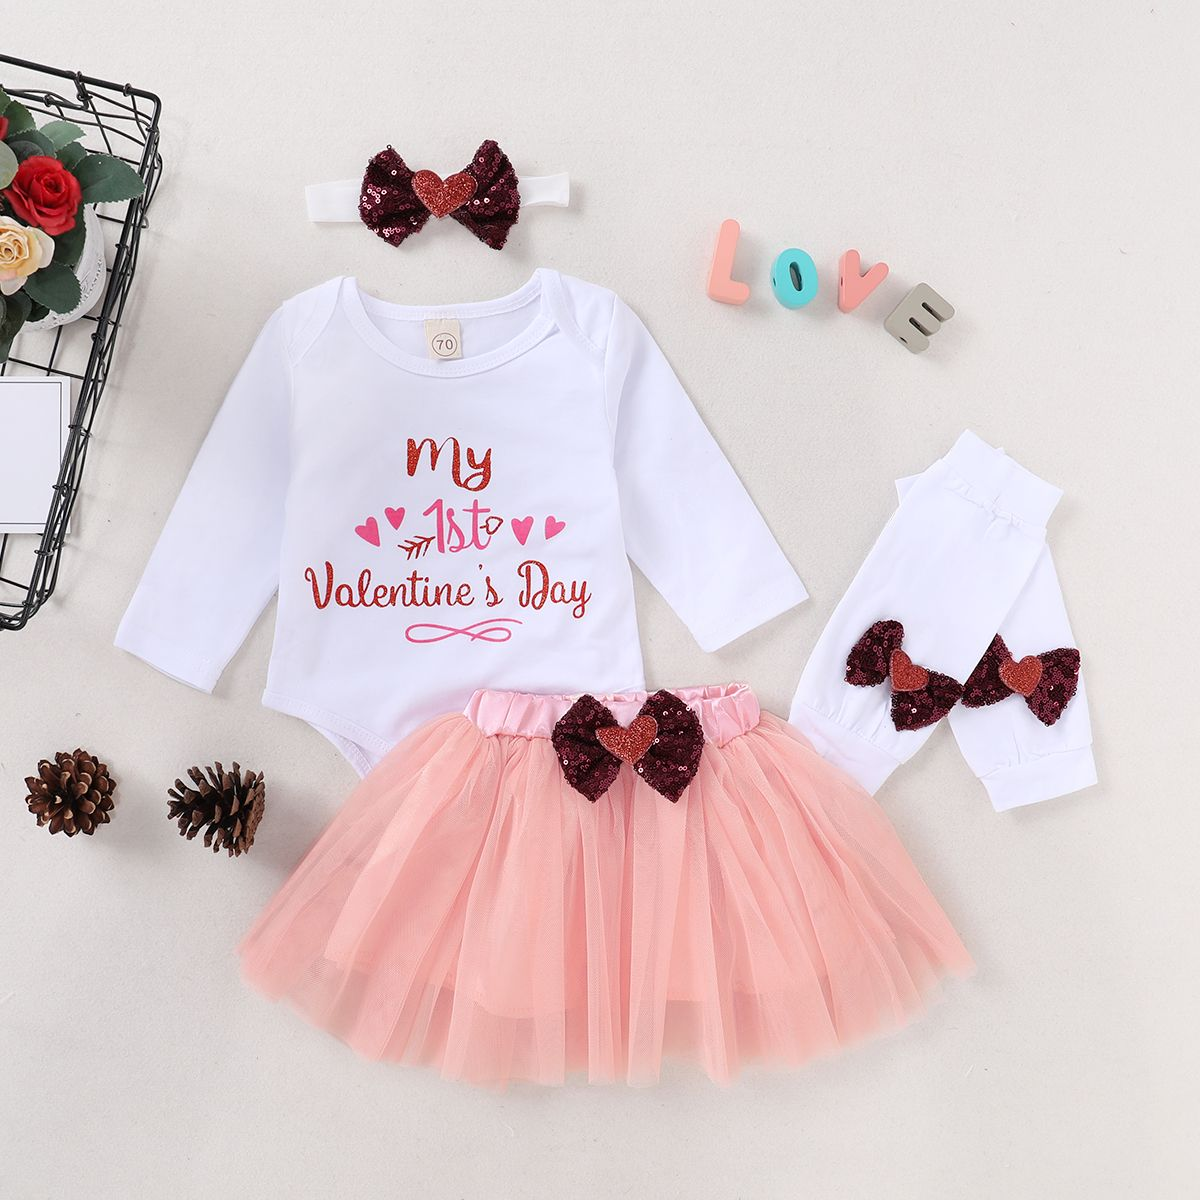 Baby Girls Valentines Day Outfits Toddler Kids Love Heart Print Romper+Tutu Skirt+Leg Warmers+Headband 4Pcs Clothes Set